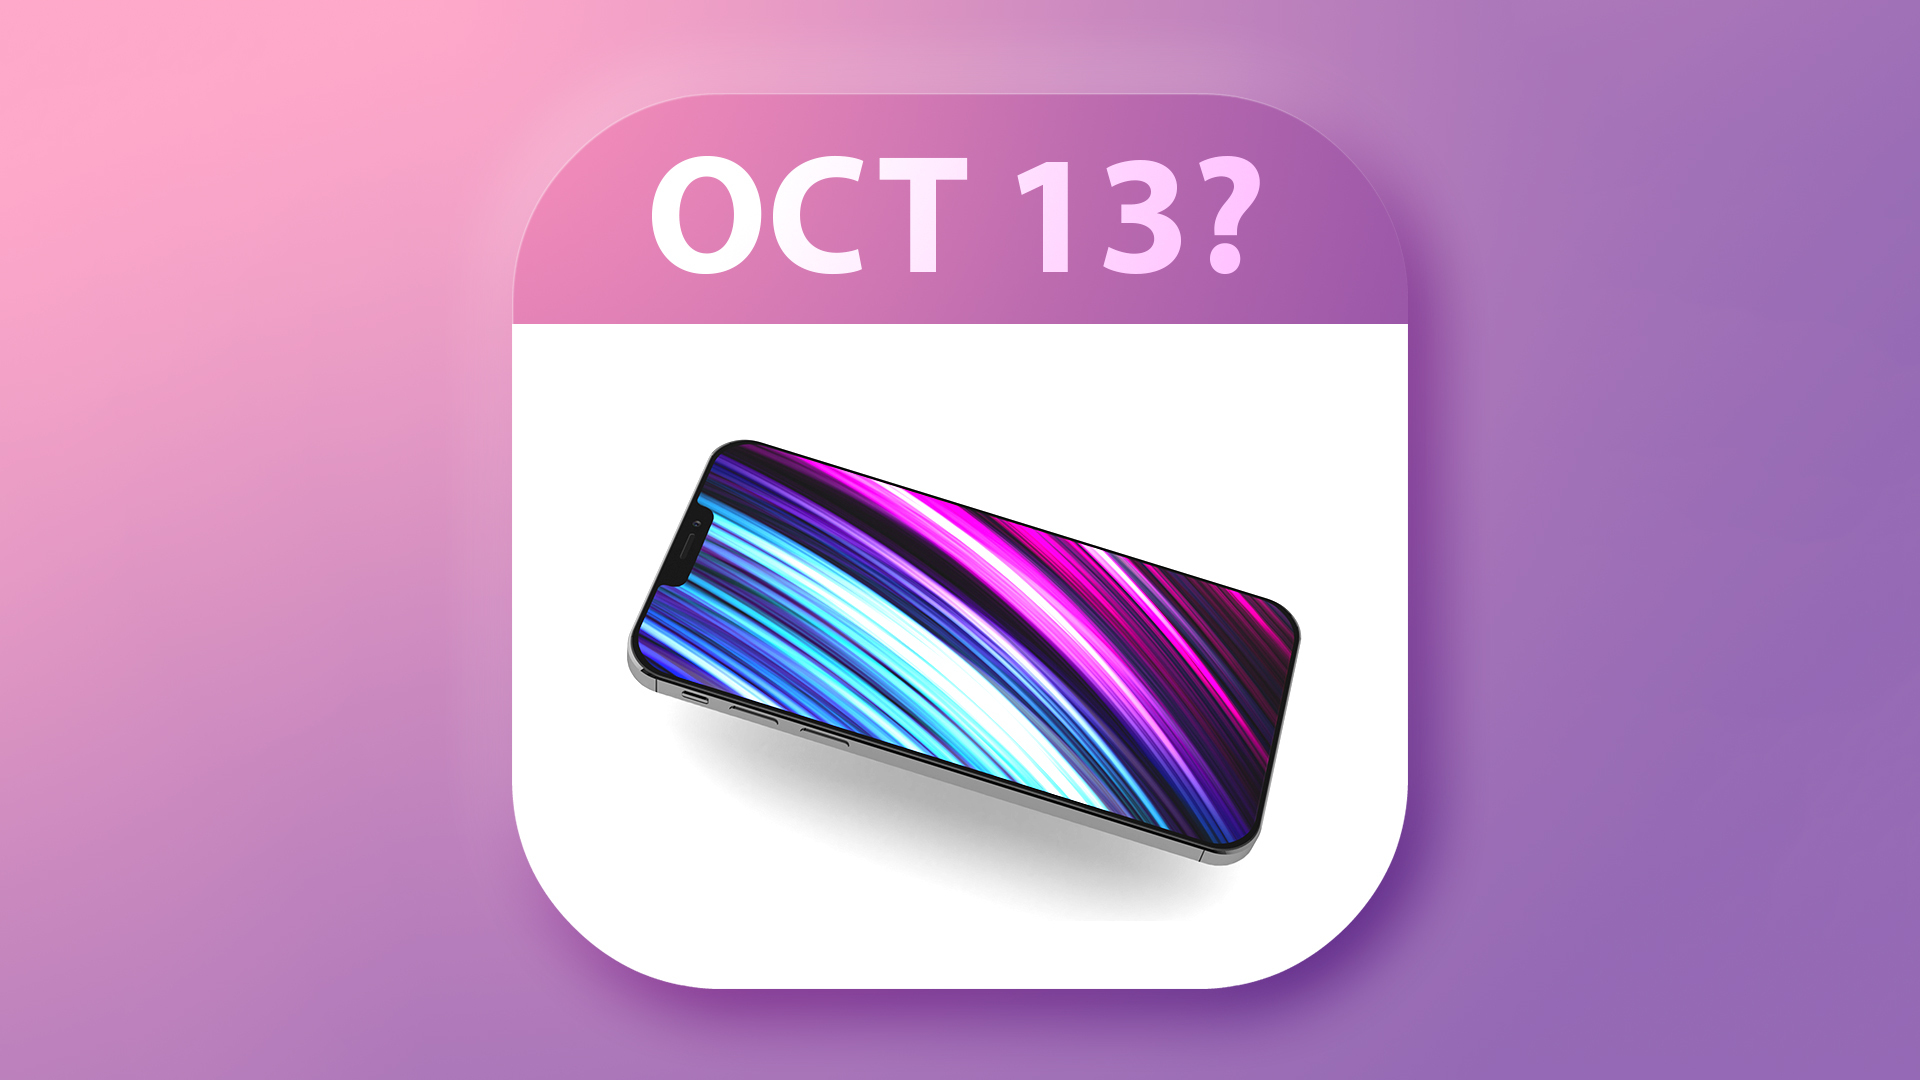 Apple's iPhone 12 Event Could Happen on October 13 Based on Rumors From Mobile Operators